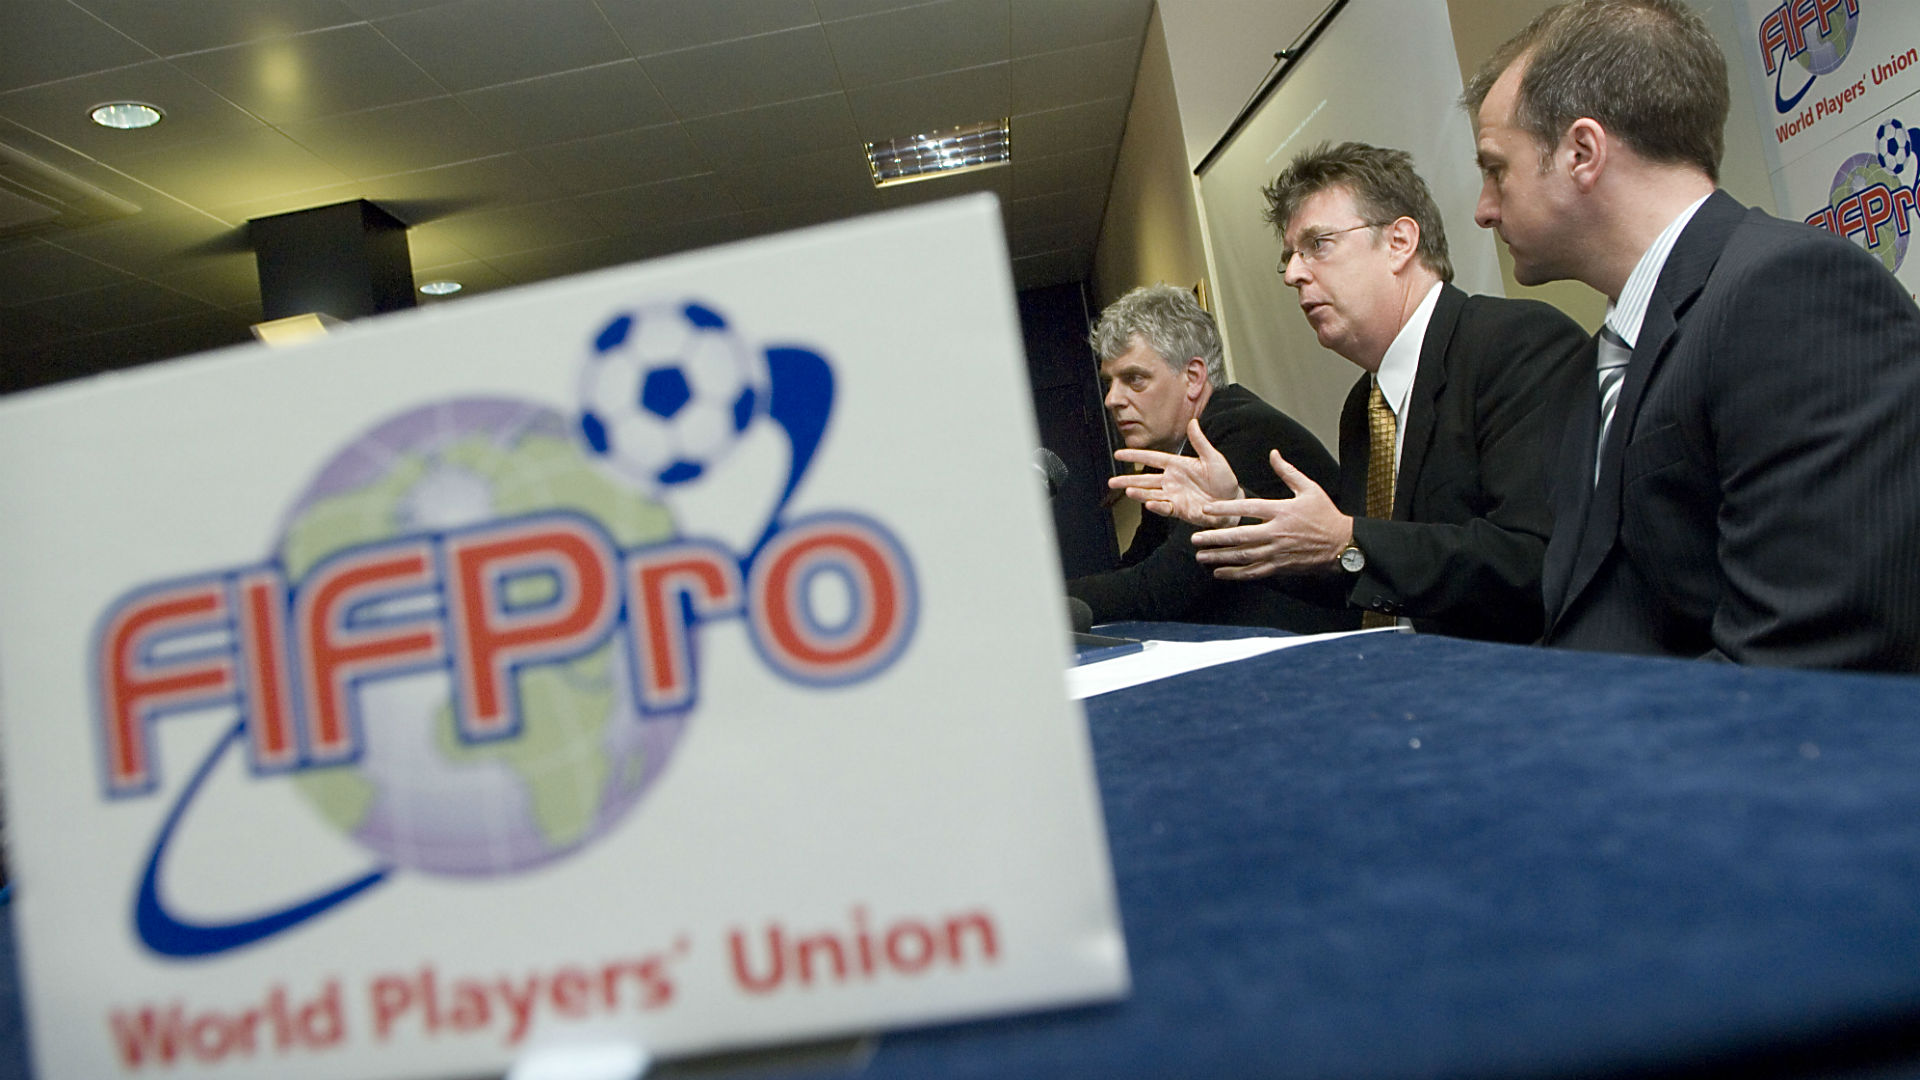 FIFPro players' union opens doors to women's membership